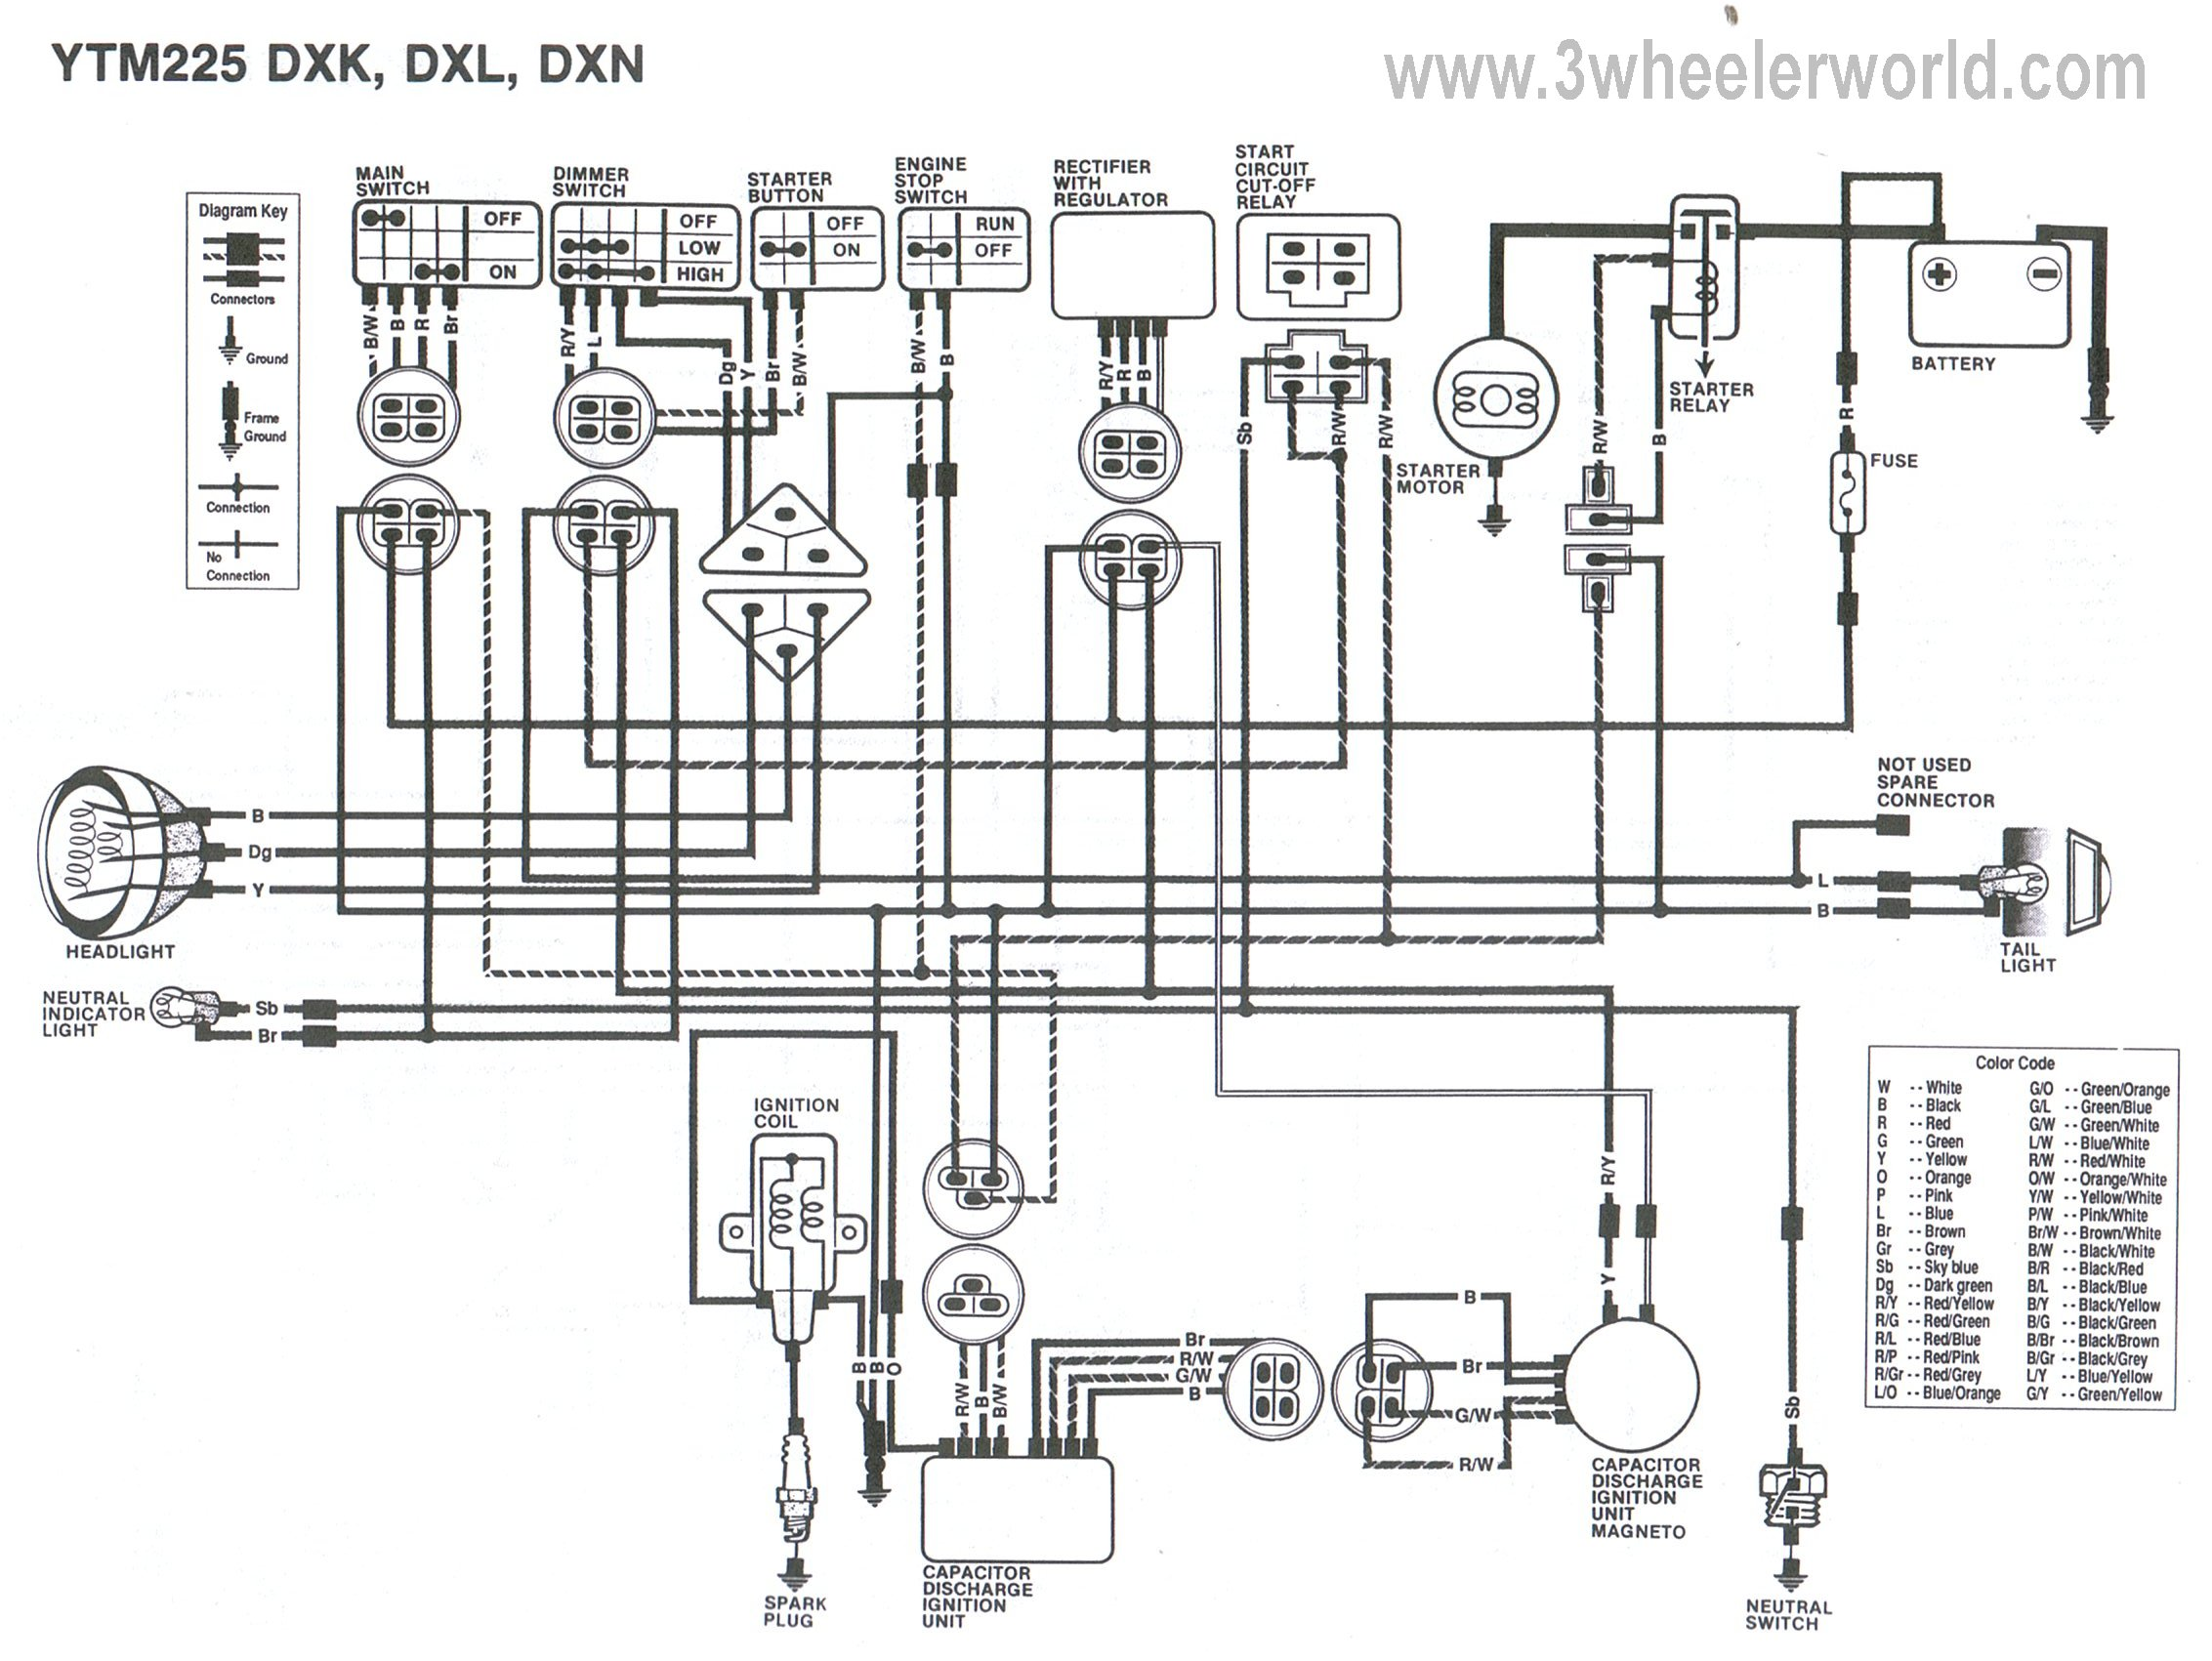 YTM225DXKDXLDXN 3 wheeler world tech help yamaha wiring diagrams yamaha blaster 200 wiring diagram at soozxer.org